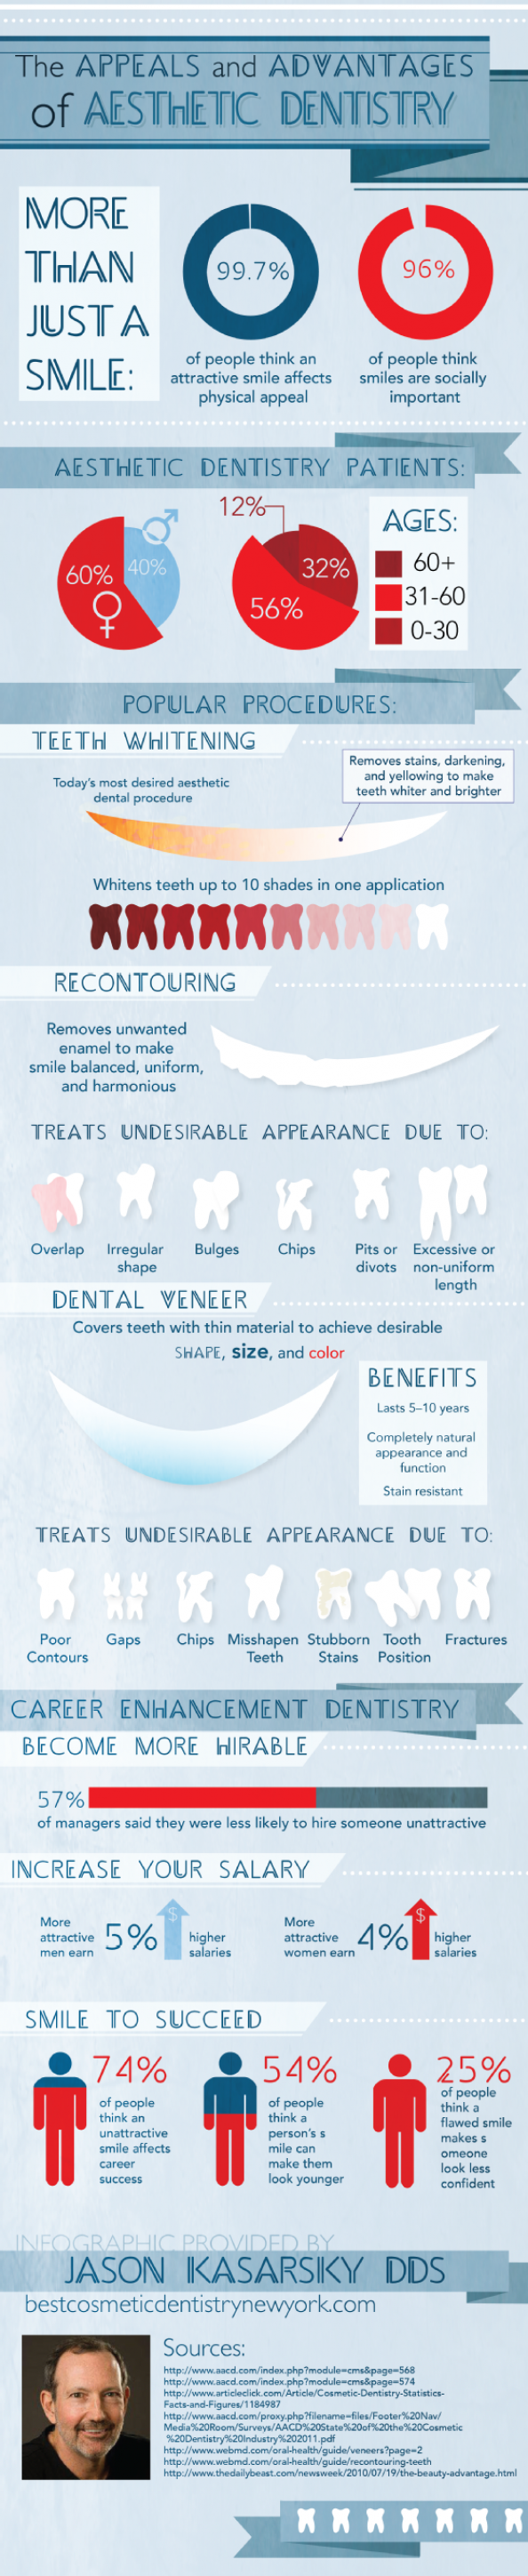 The Appeals and Advantages of Aesthetic Dentistry Infographic